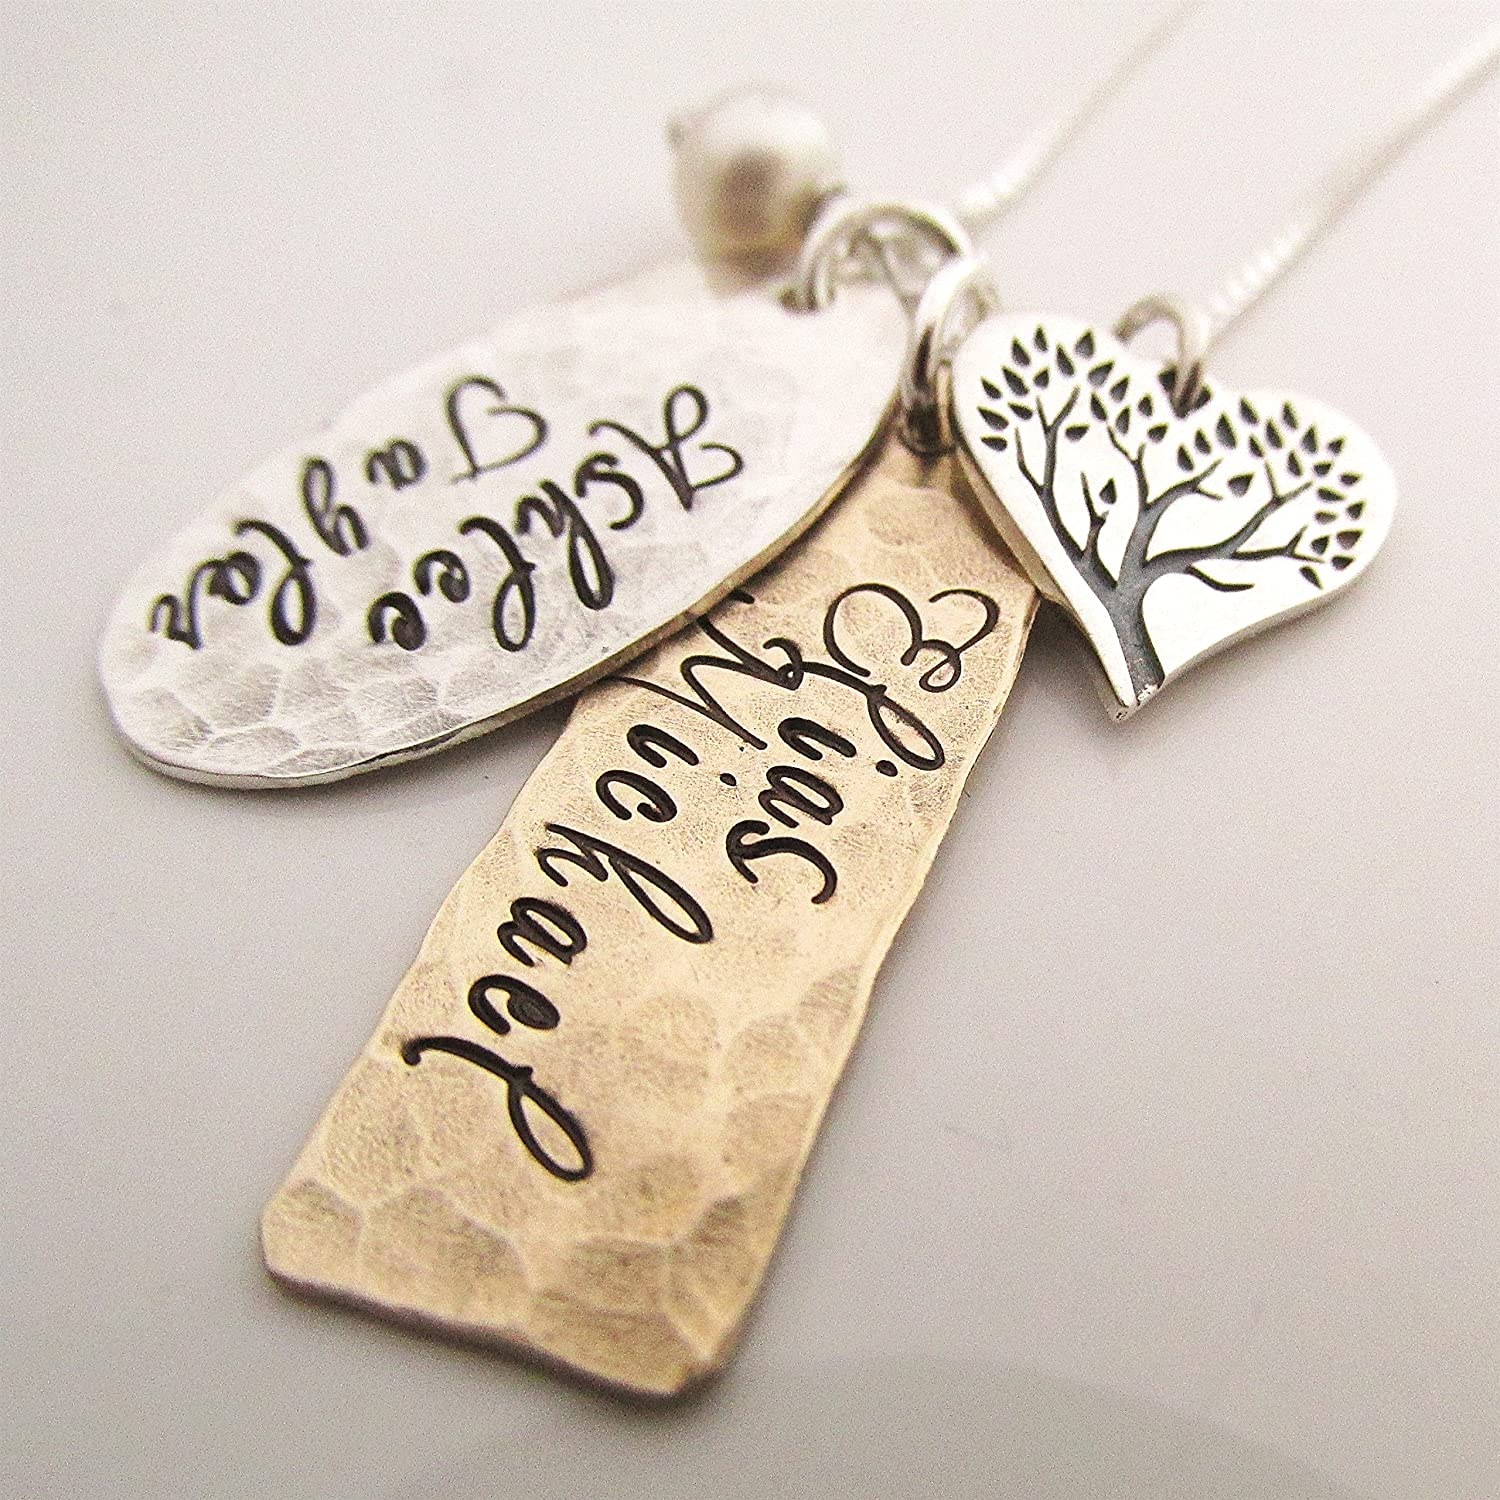 Family Necklace Name Jewelry Personalized Jewelry Hand Stamped Necklace Mommy Necklace Retro Mid-Century Family Name Necklace